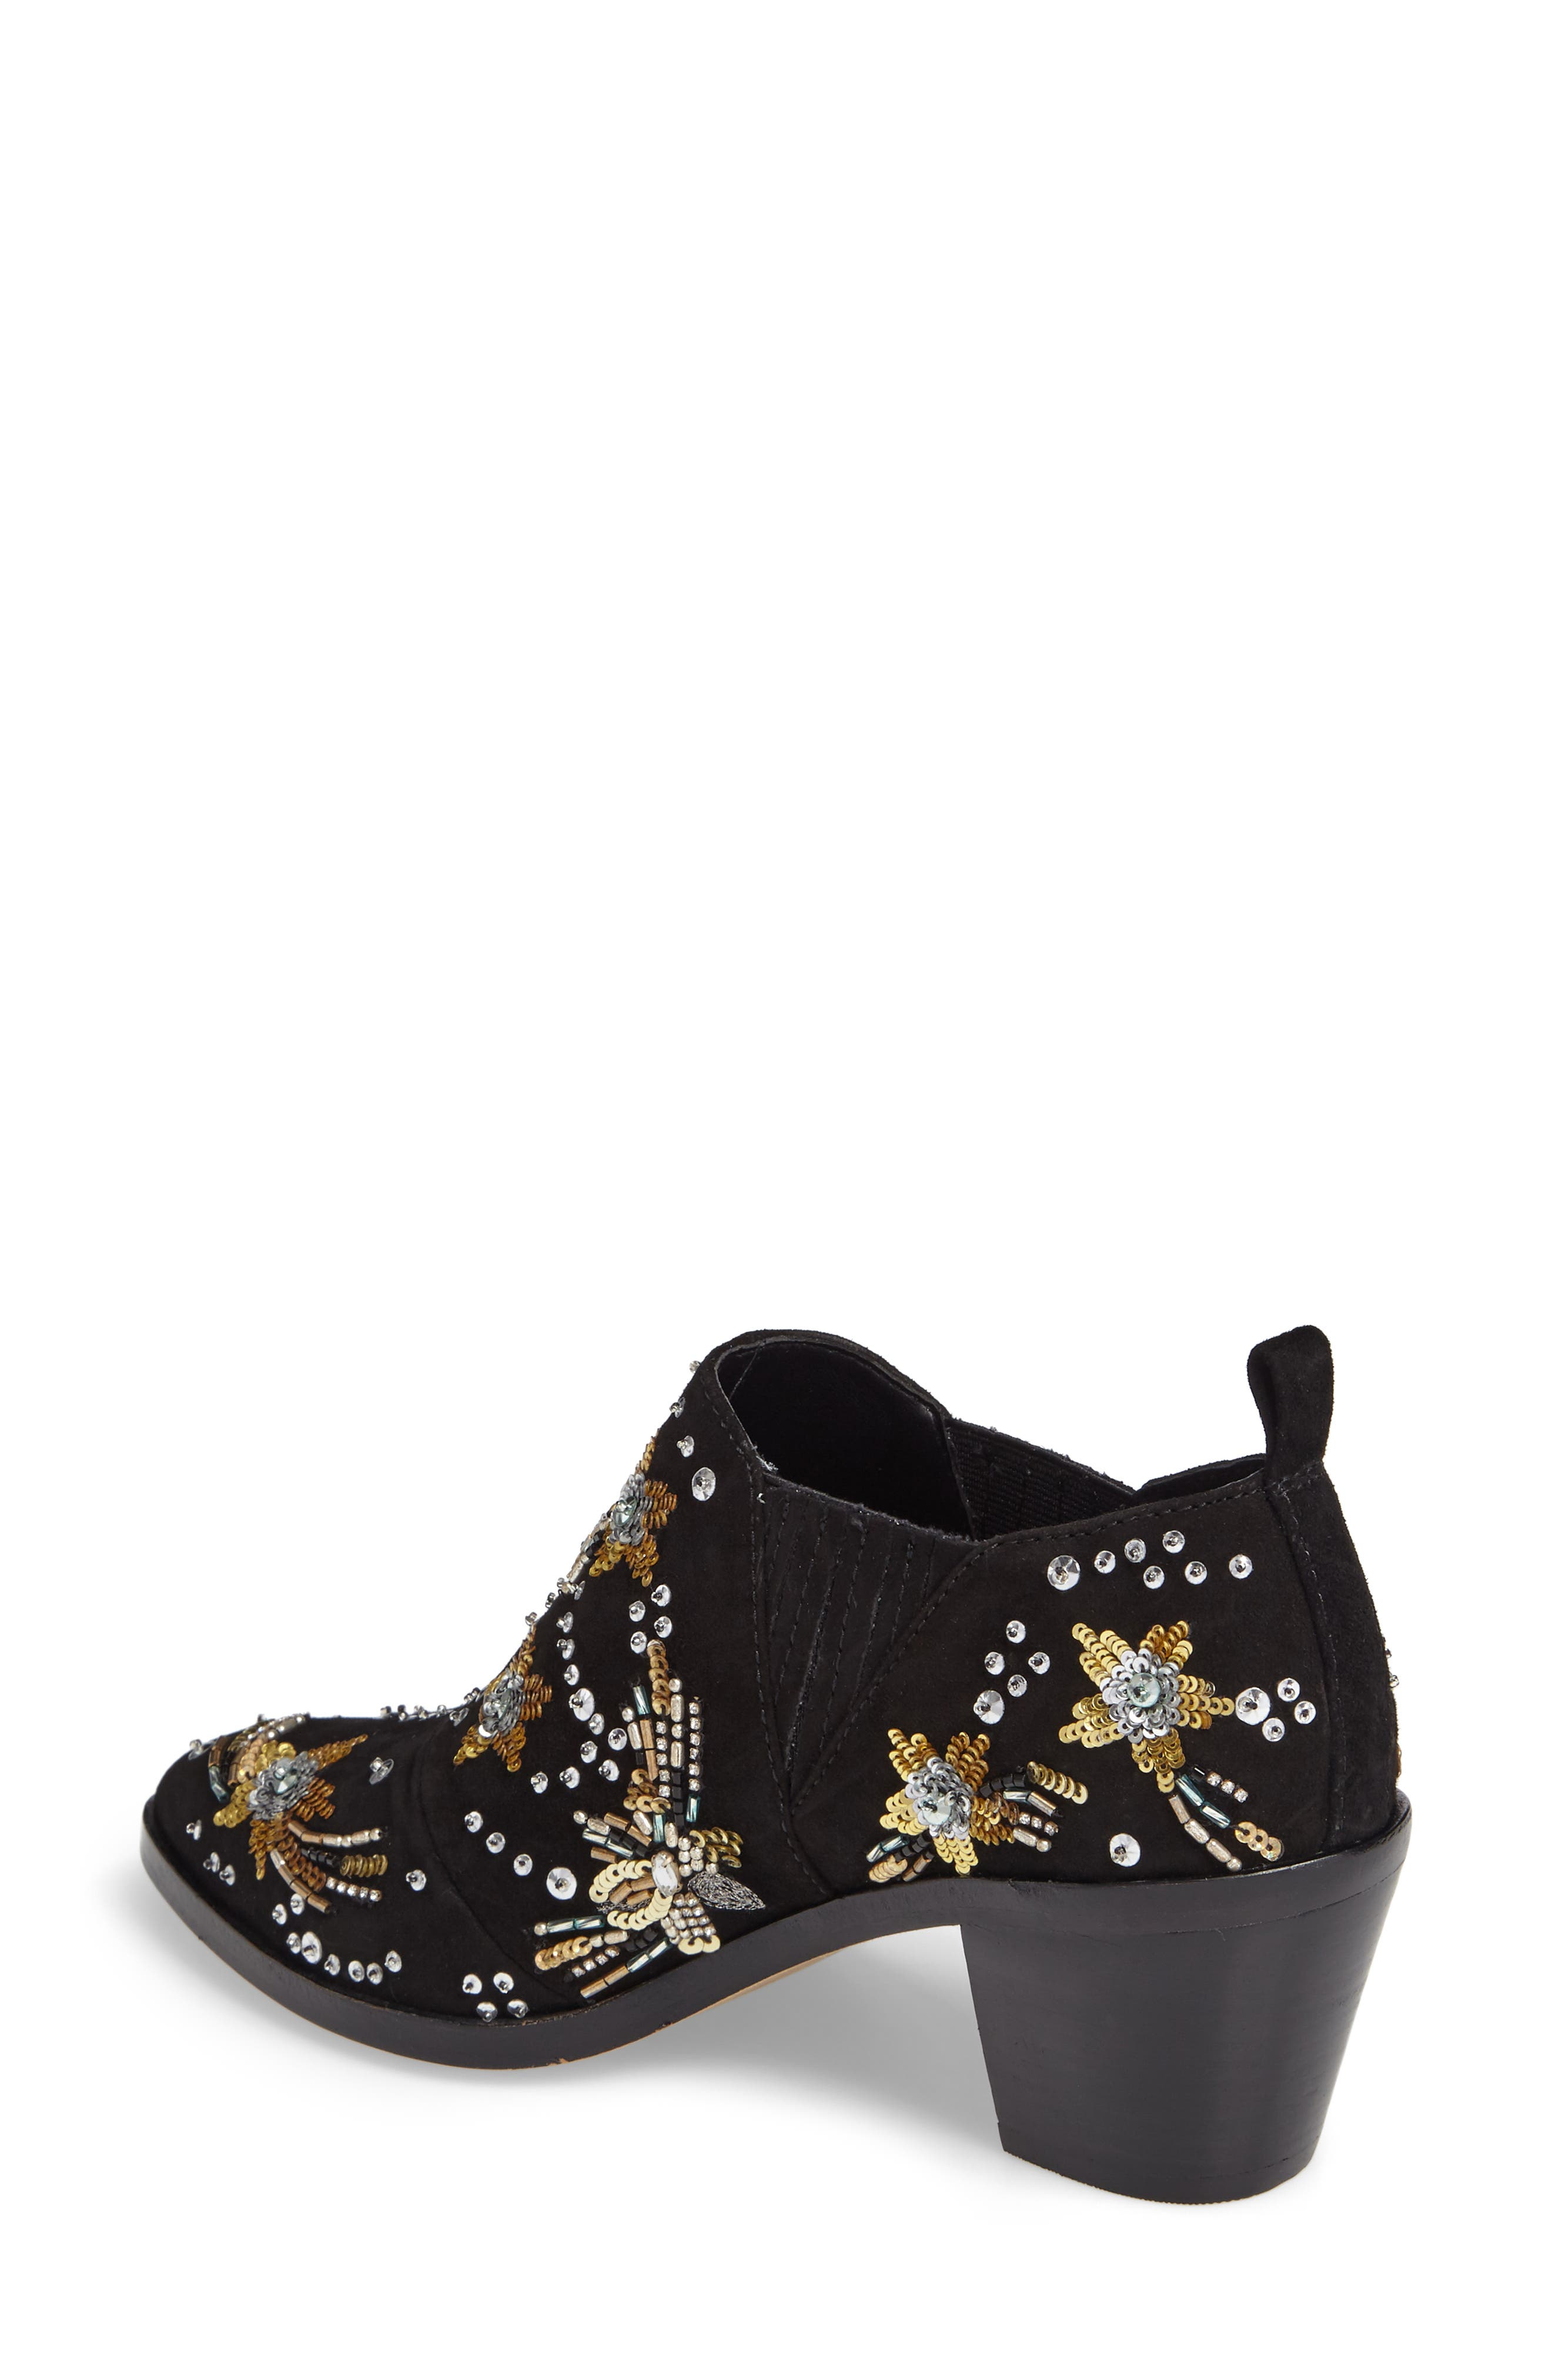 Lucy Embellished Bootie,                             Alternate thumbnail 2, color,                             001